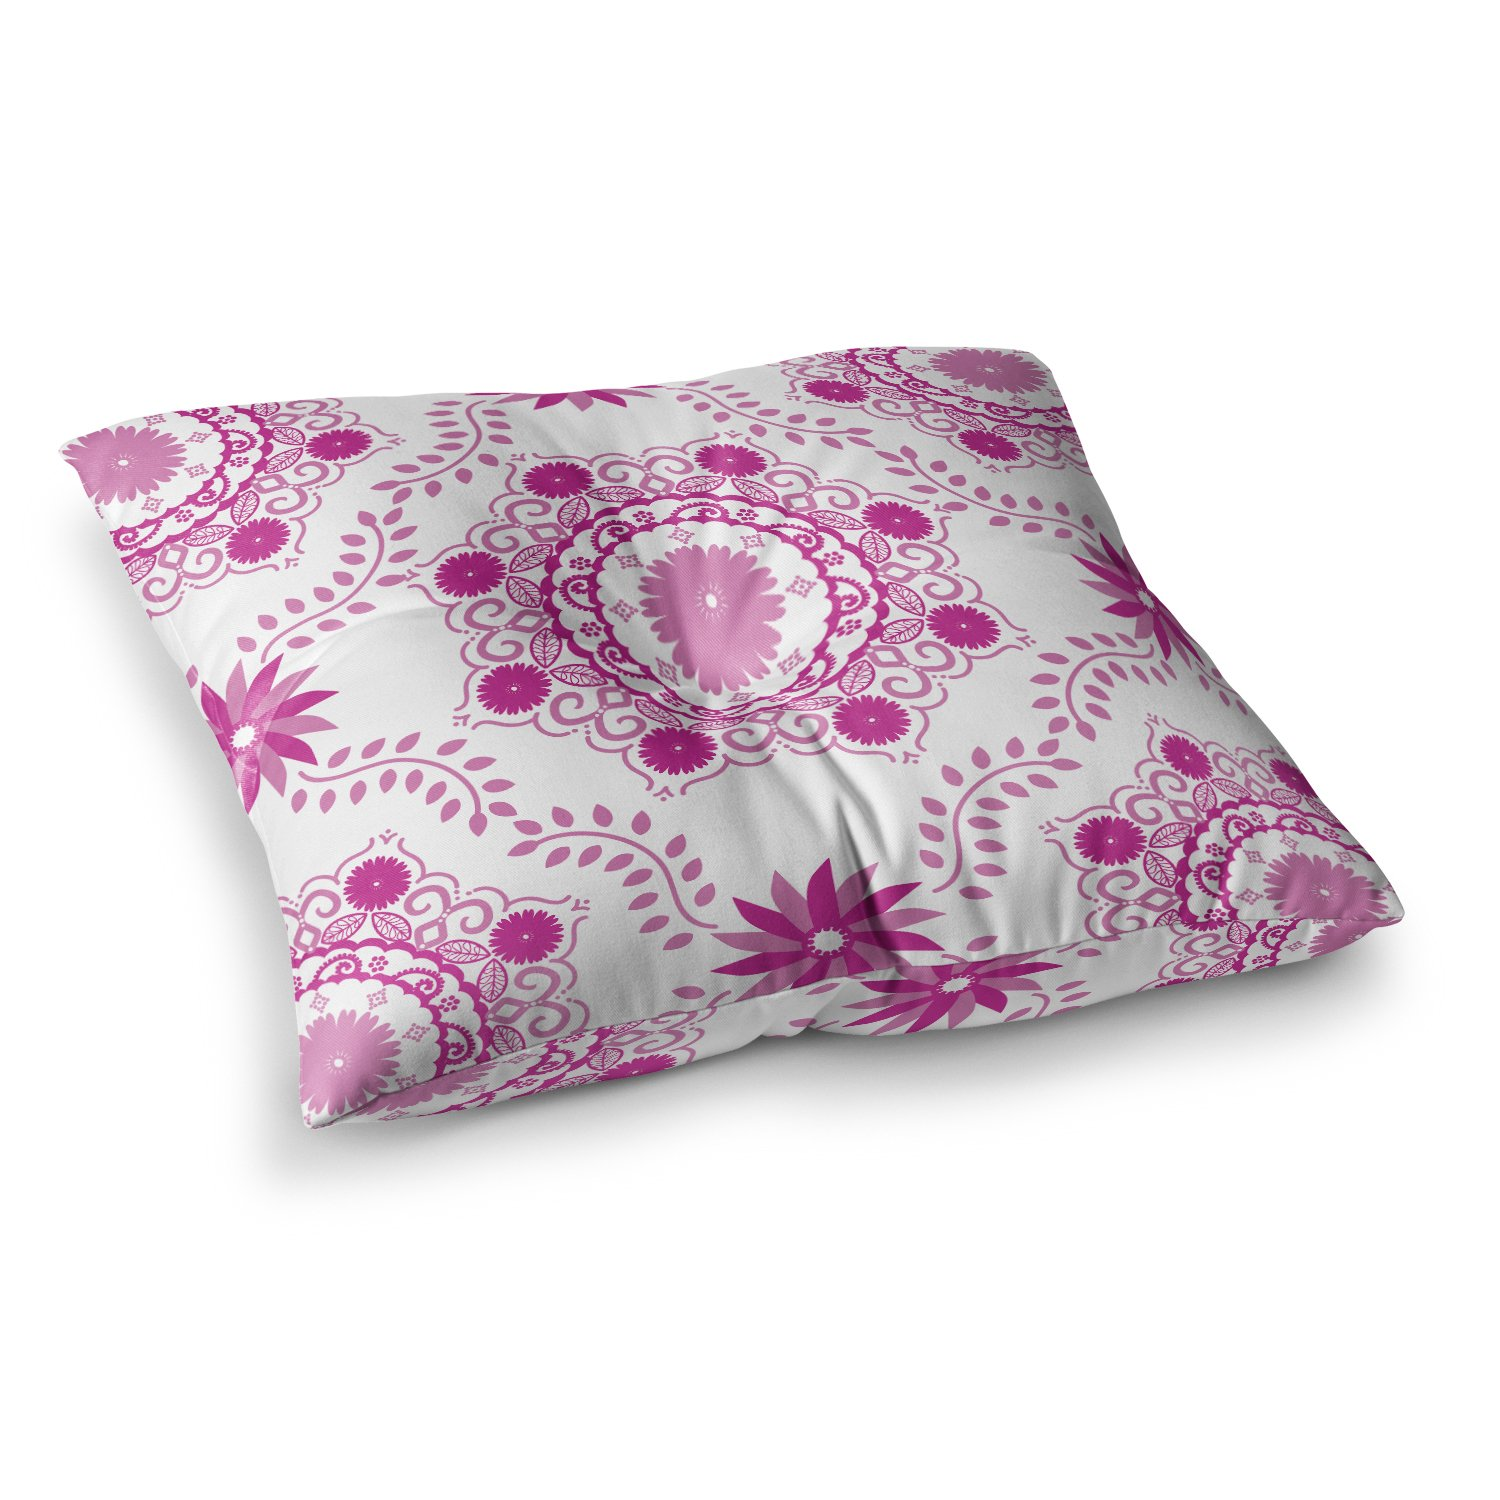 KESS InHouse Anneline Sophia Let's Dance Fuschia Pink Floral Square Floor Pillow x 23''